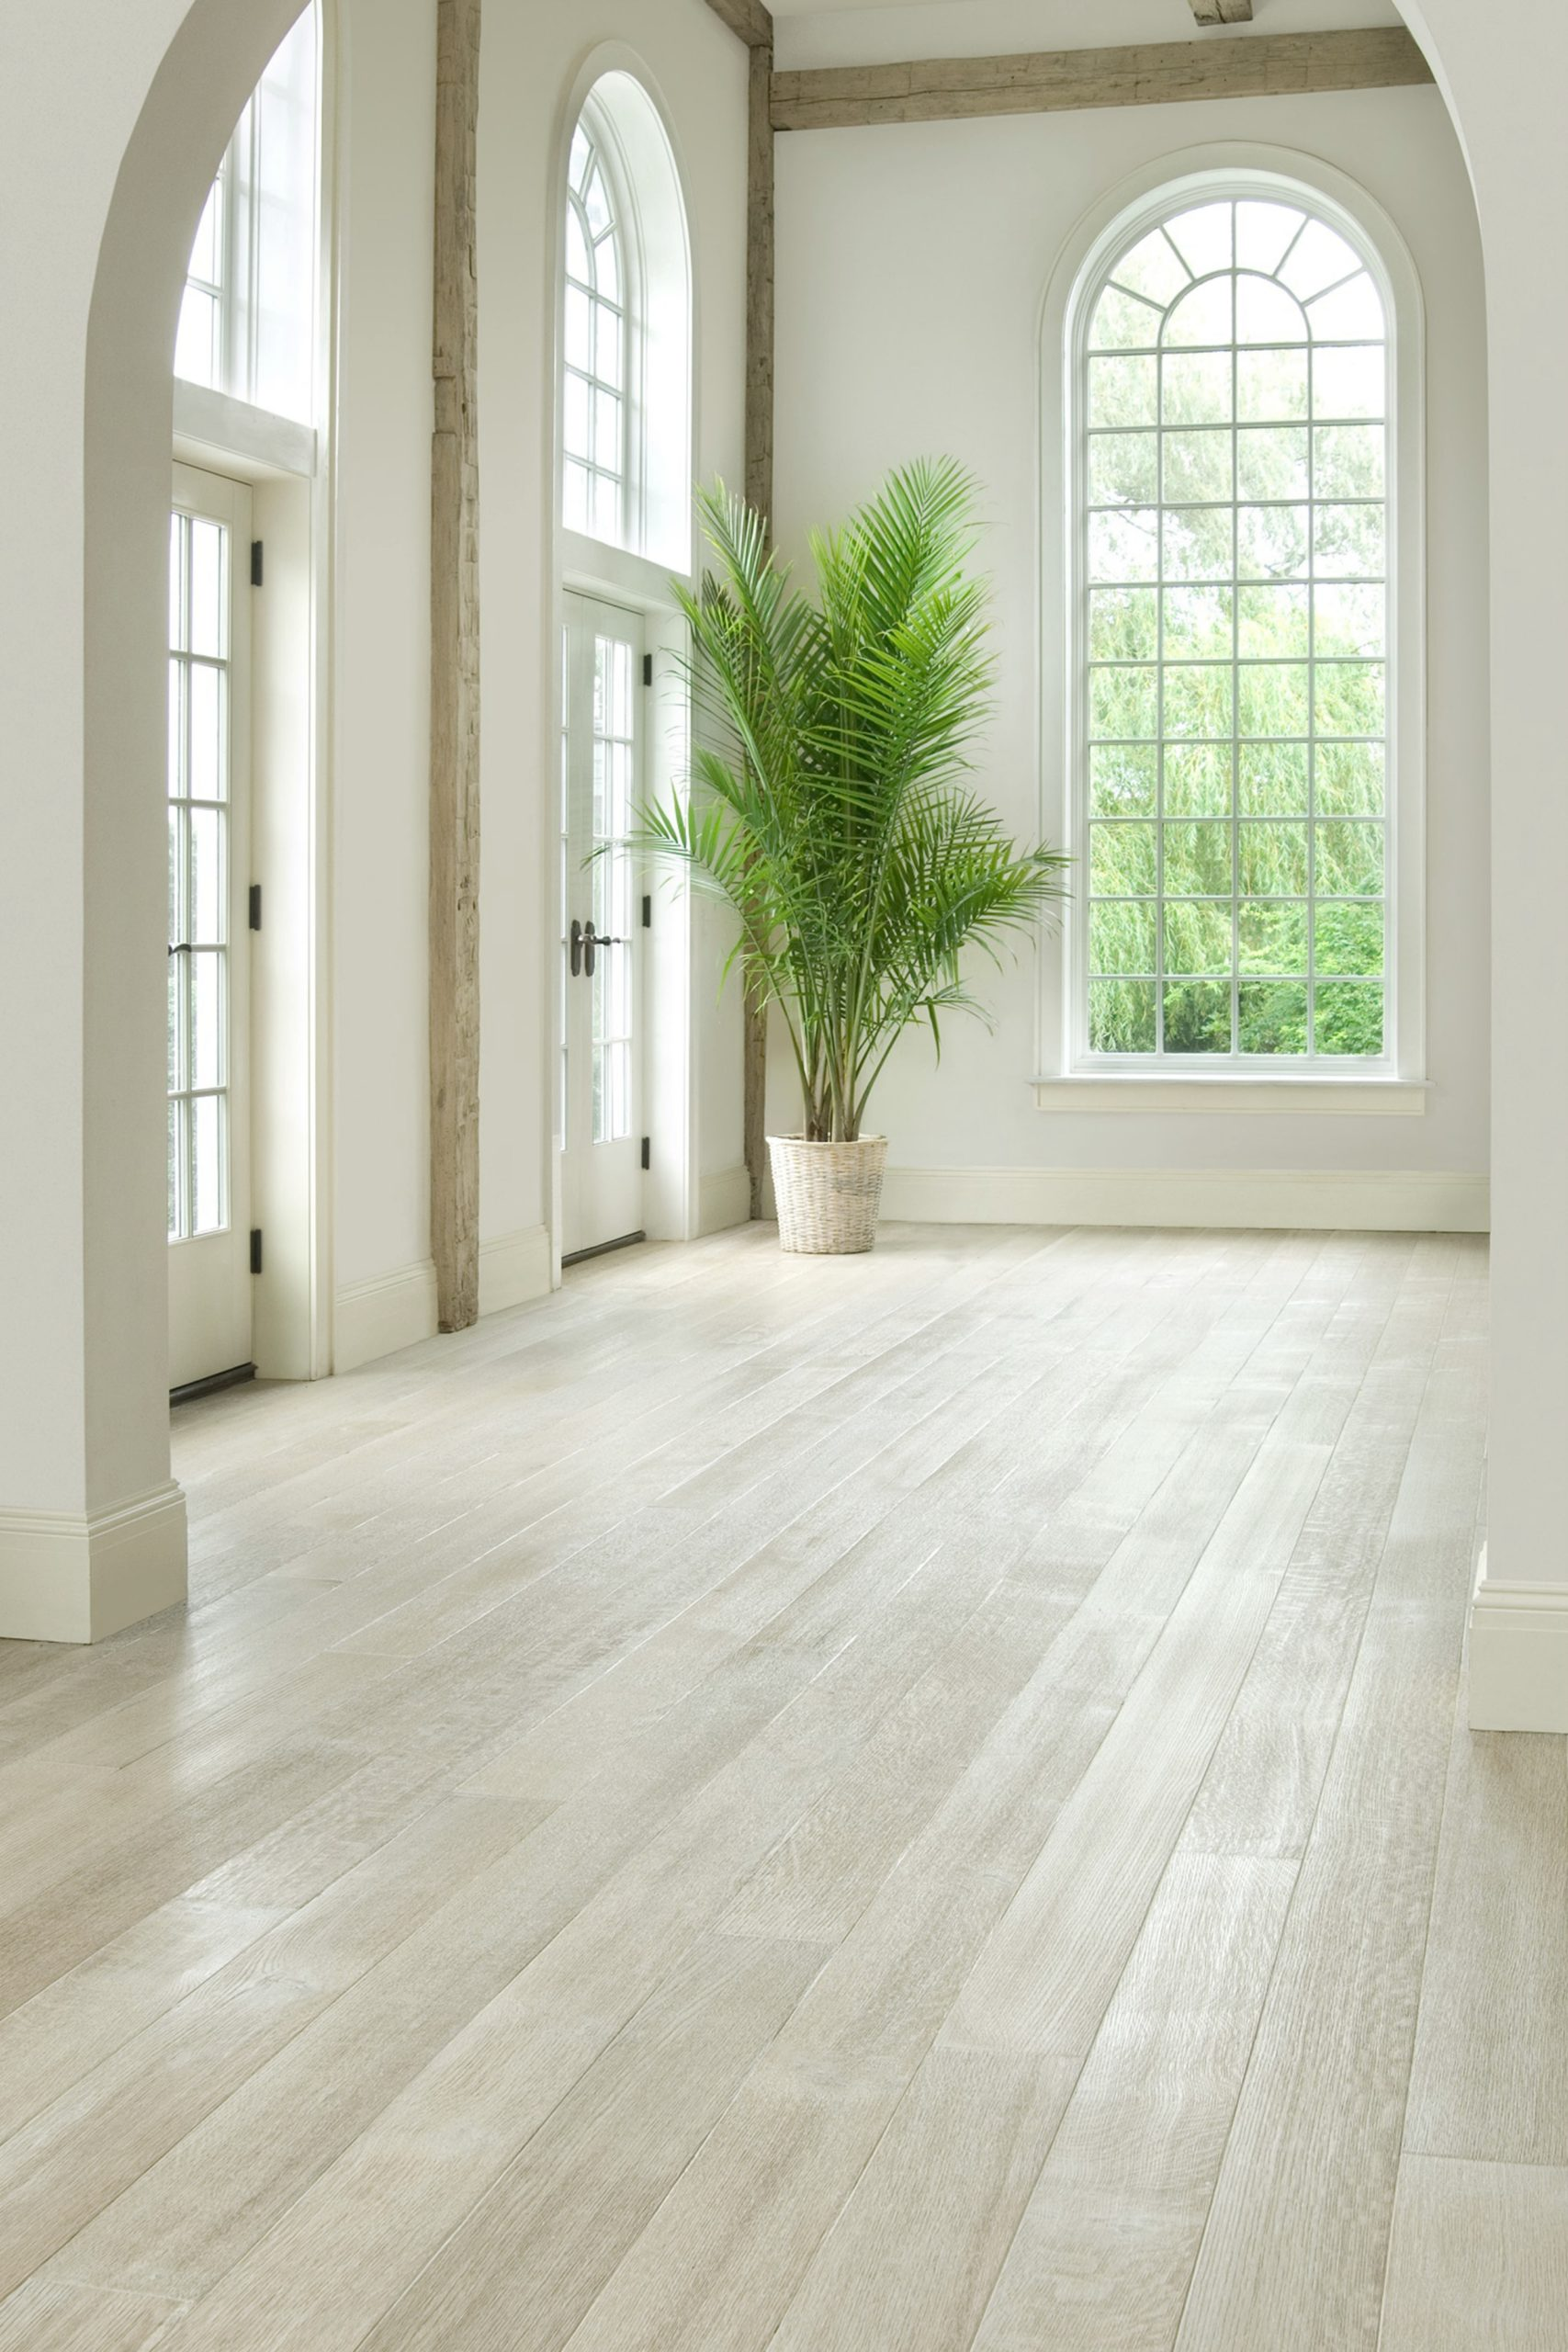 Why I Love Wide Plank Hardwood Flooring and Why You Should Too on Apt34